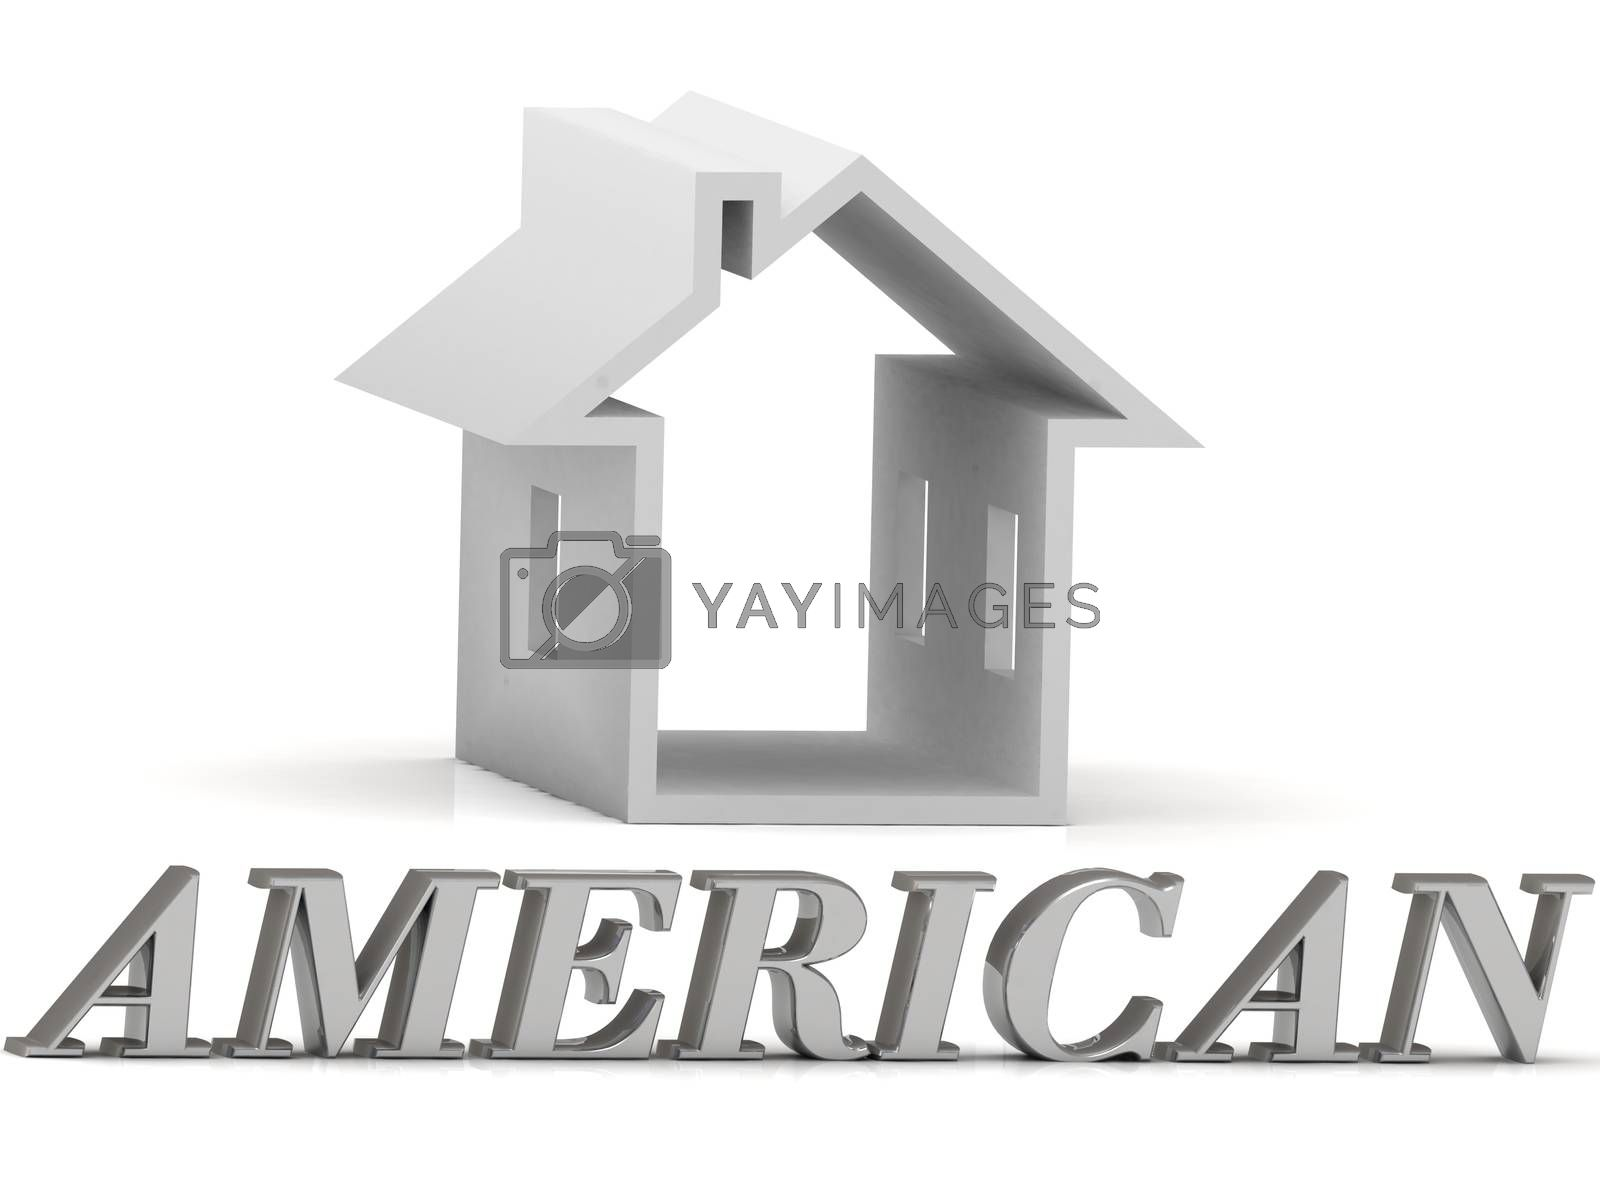 AMERICAN- inscription of silver letters and white house on white background